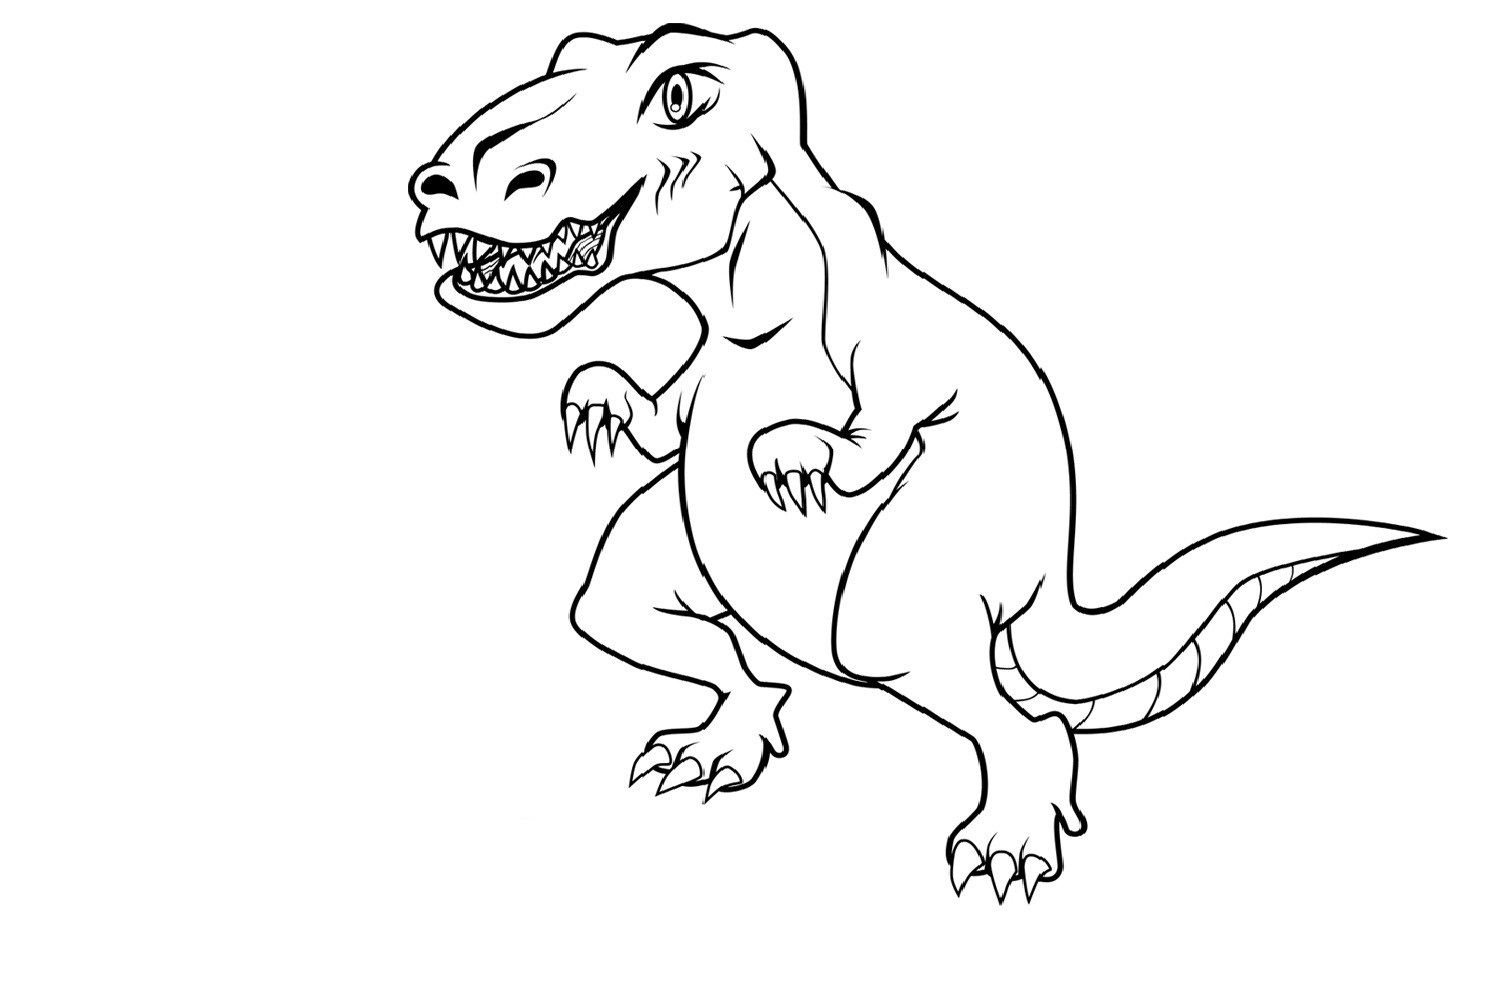 free printable dinosaur coloring pages - Printable Coloring Pages Kids